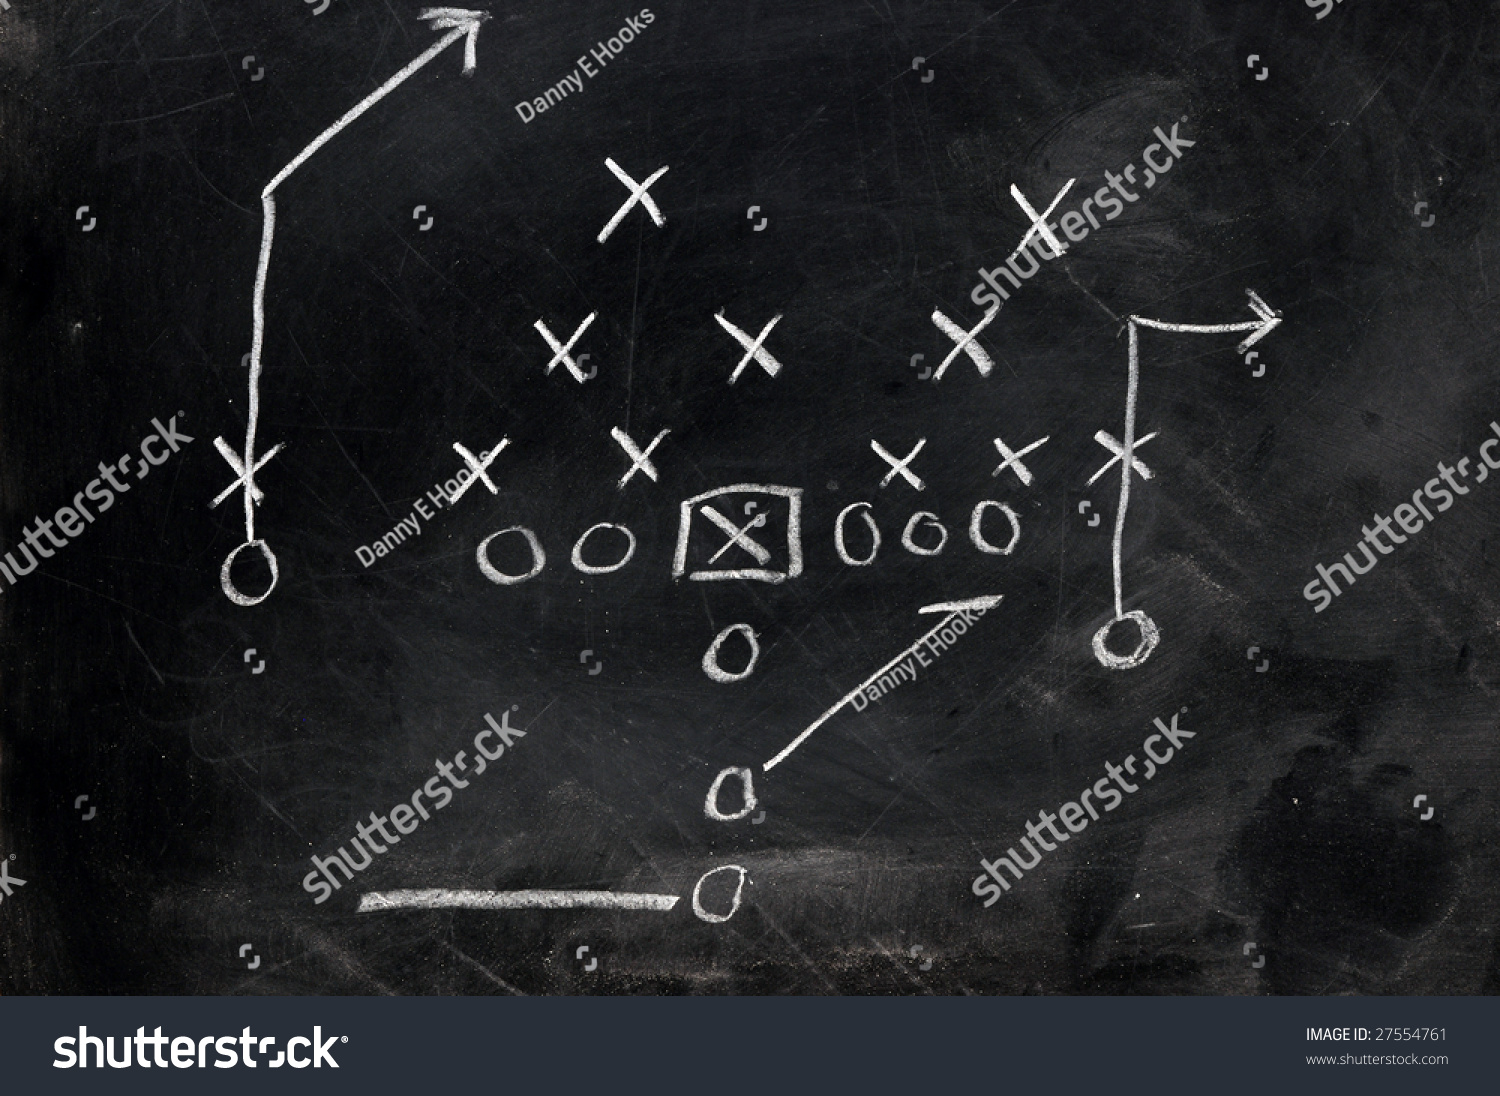 diagram of football play on black chalkboard  stock photo      diagram of football play on black chalkboard  preview  save to a lightbox